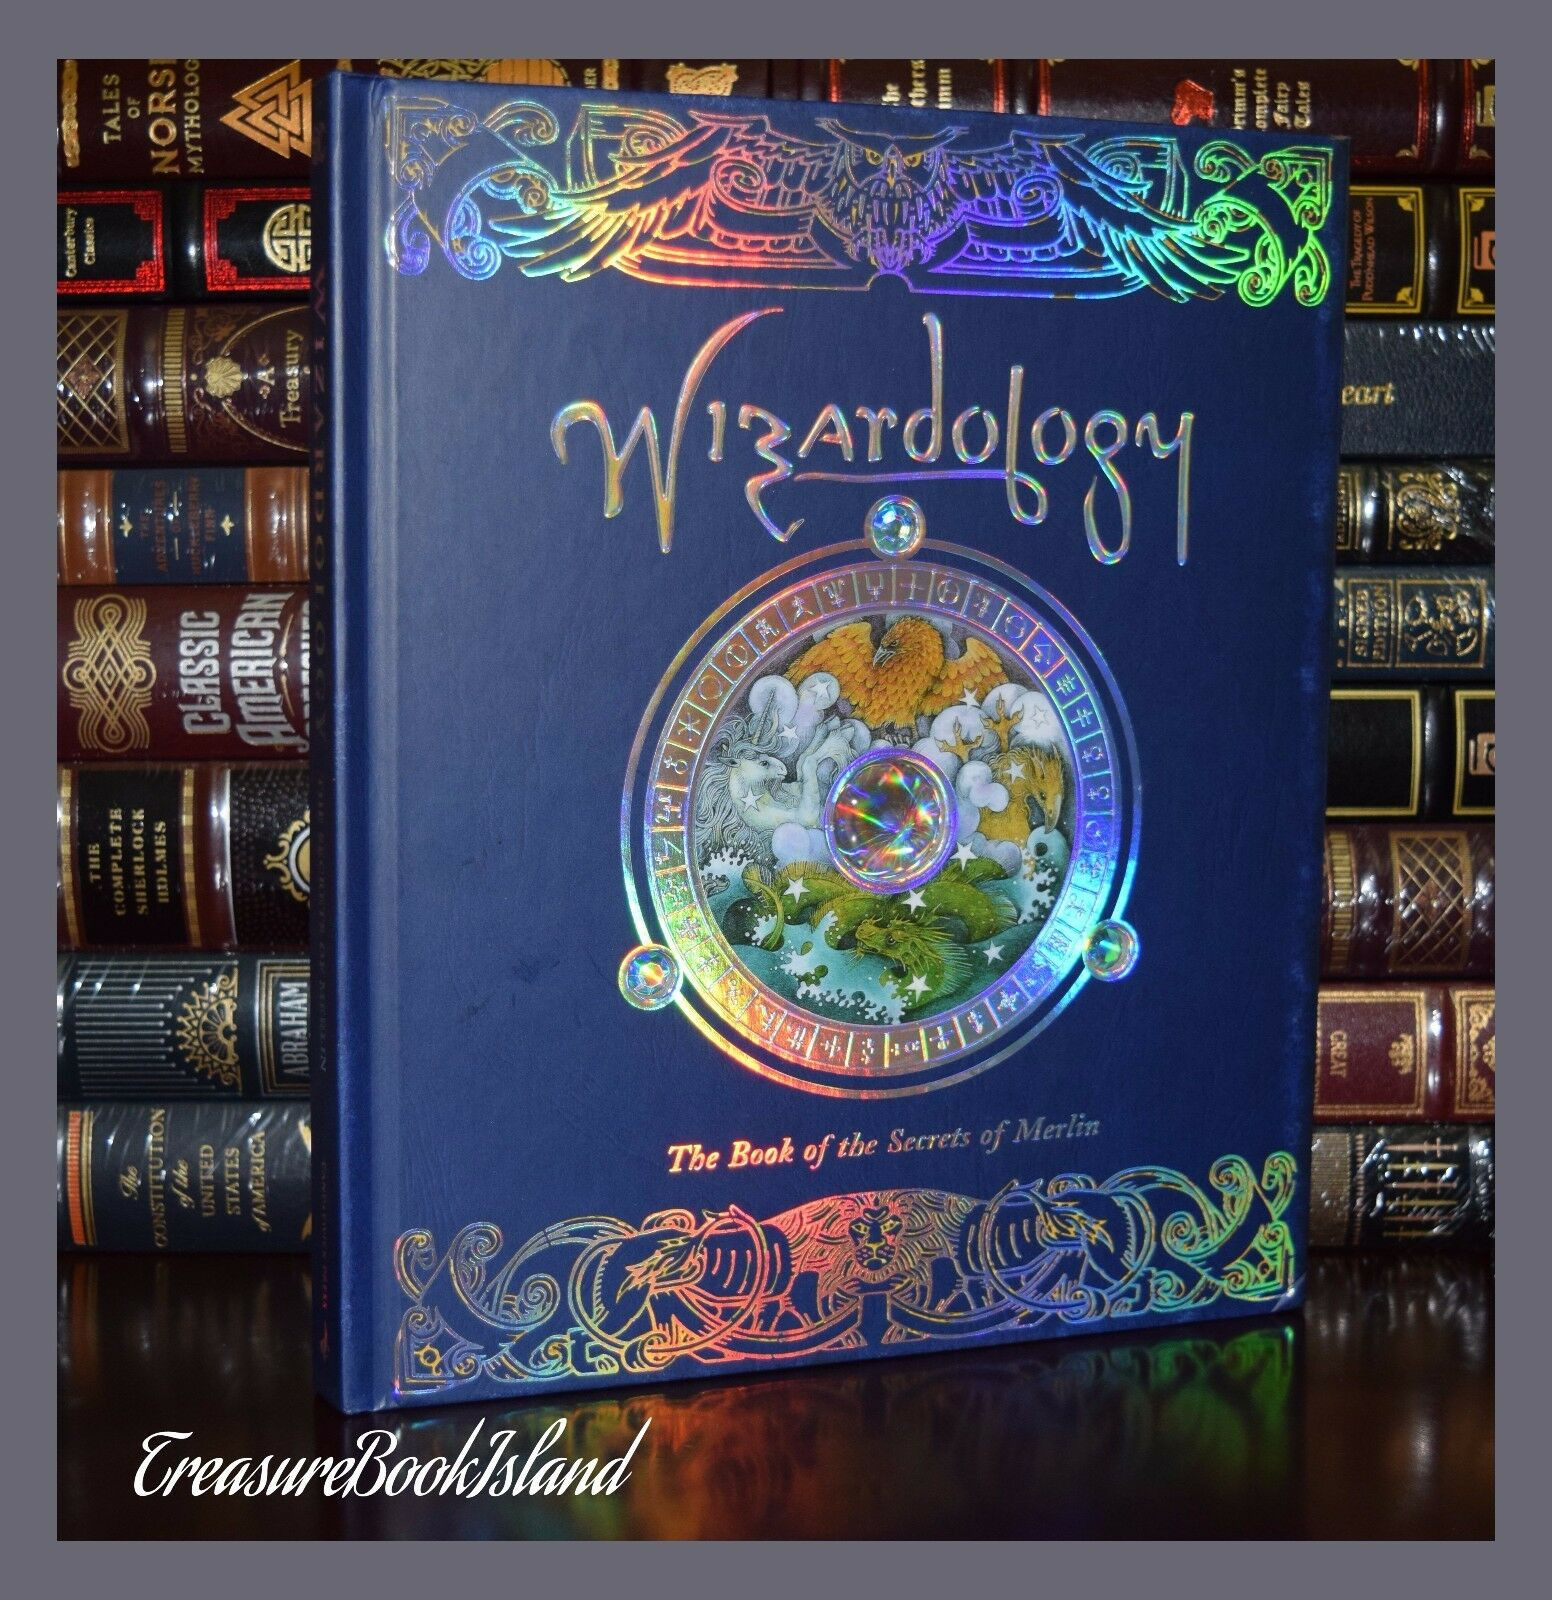 Wizardology Secrets of Merlin Wizard Magic Illustrated New Large Hardcover Gift